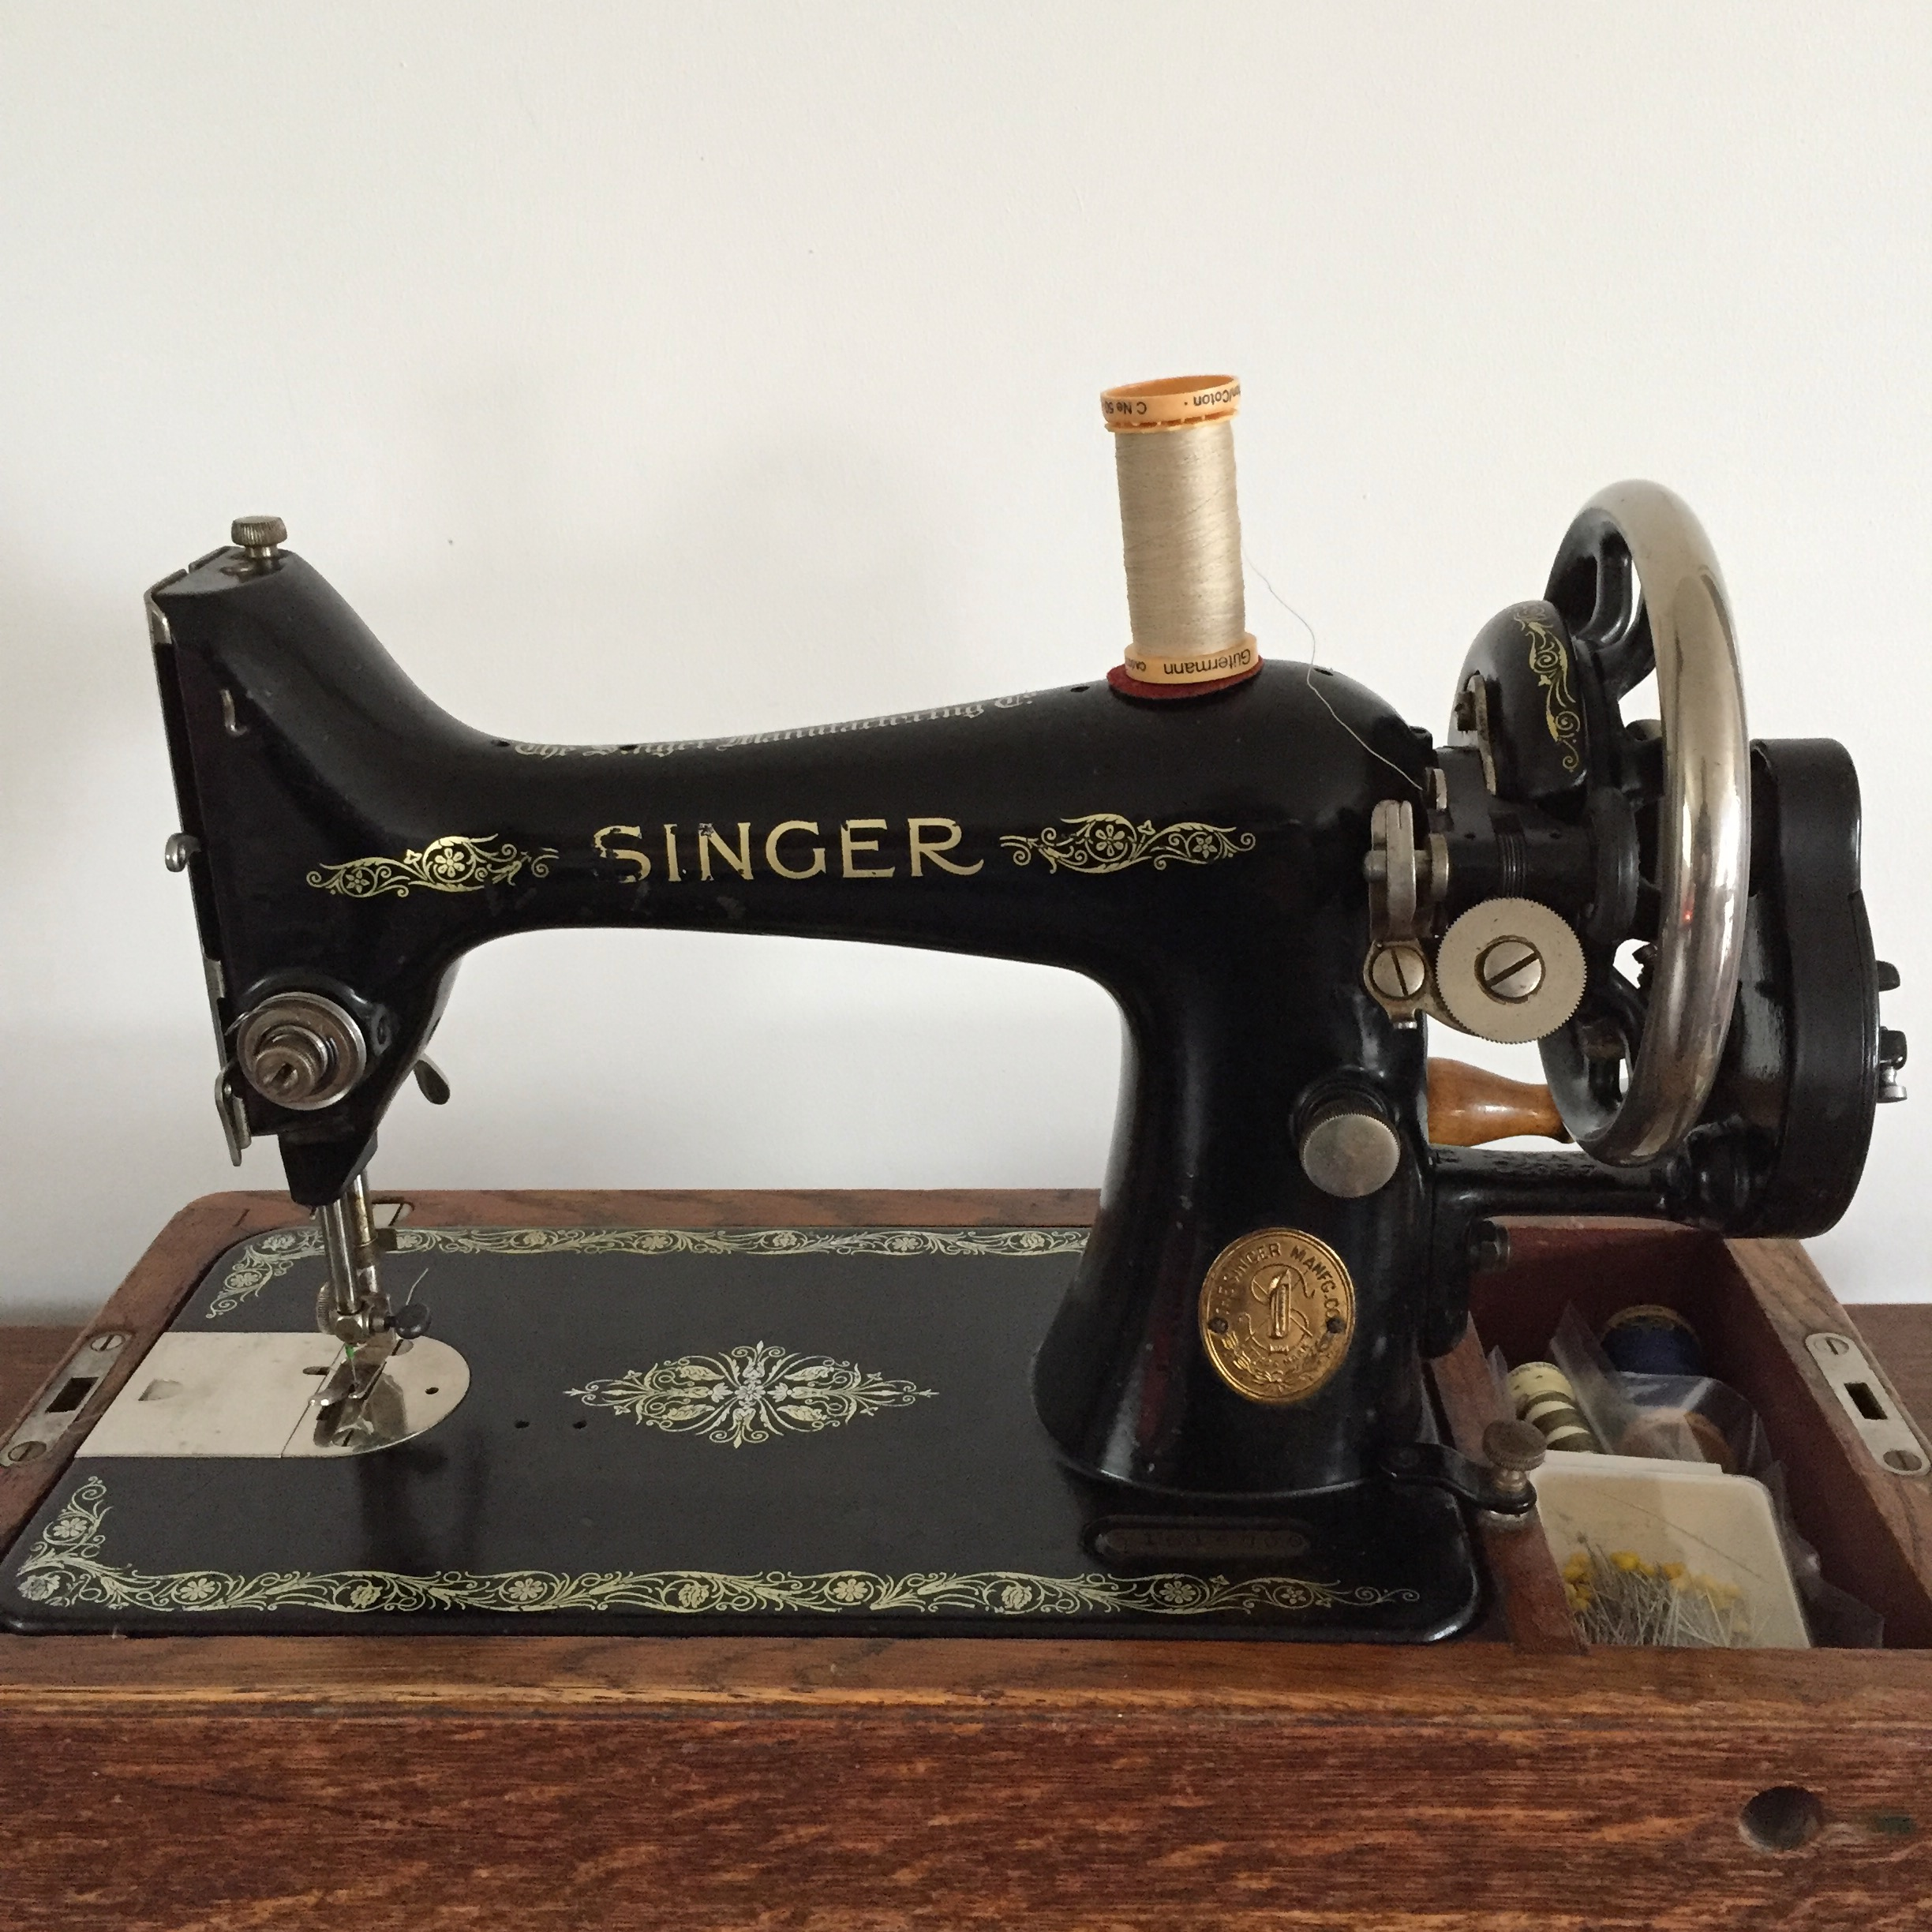 Cheap Sewing Machines Australia The Sewing Machine Natalie Fergie